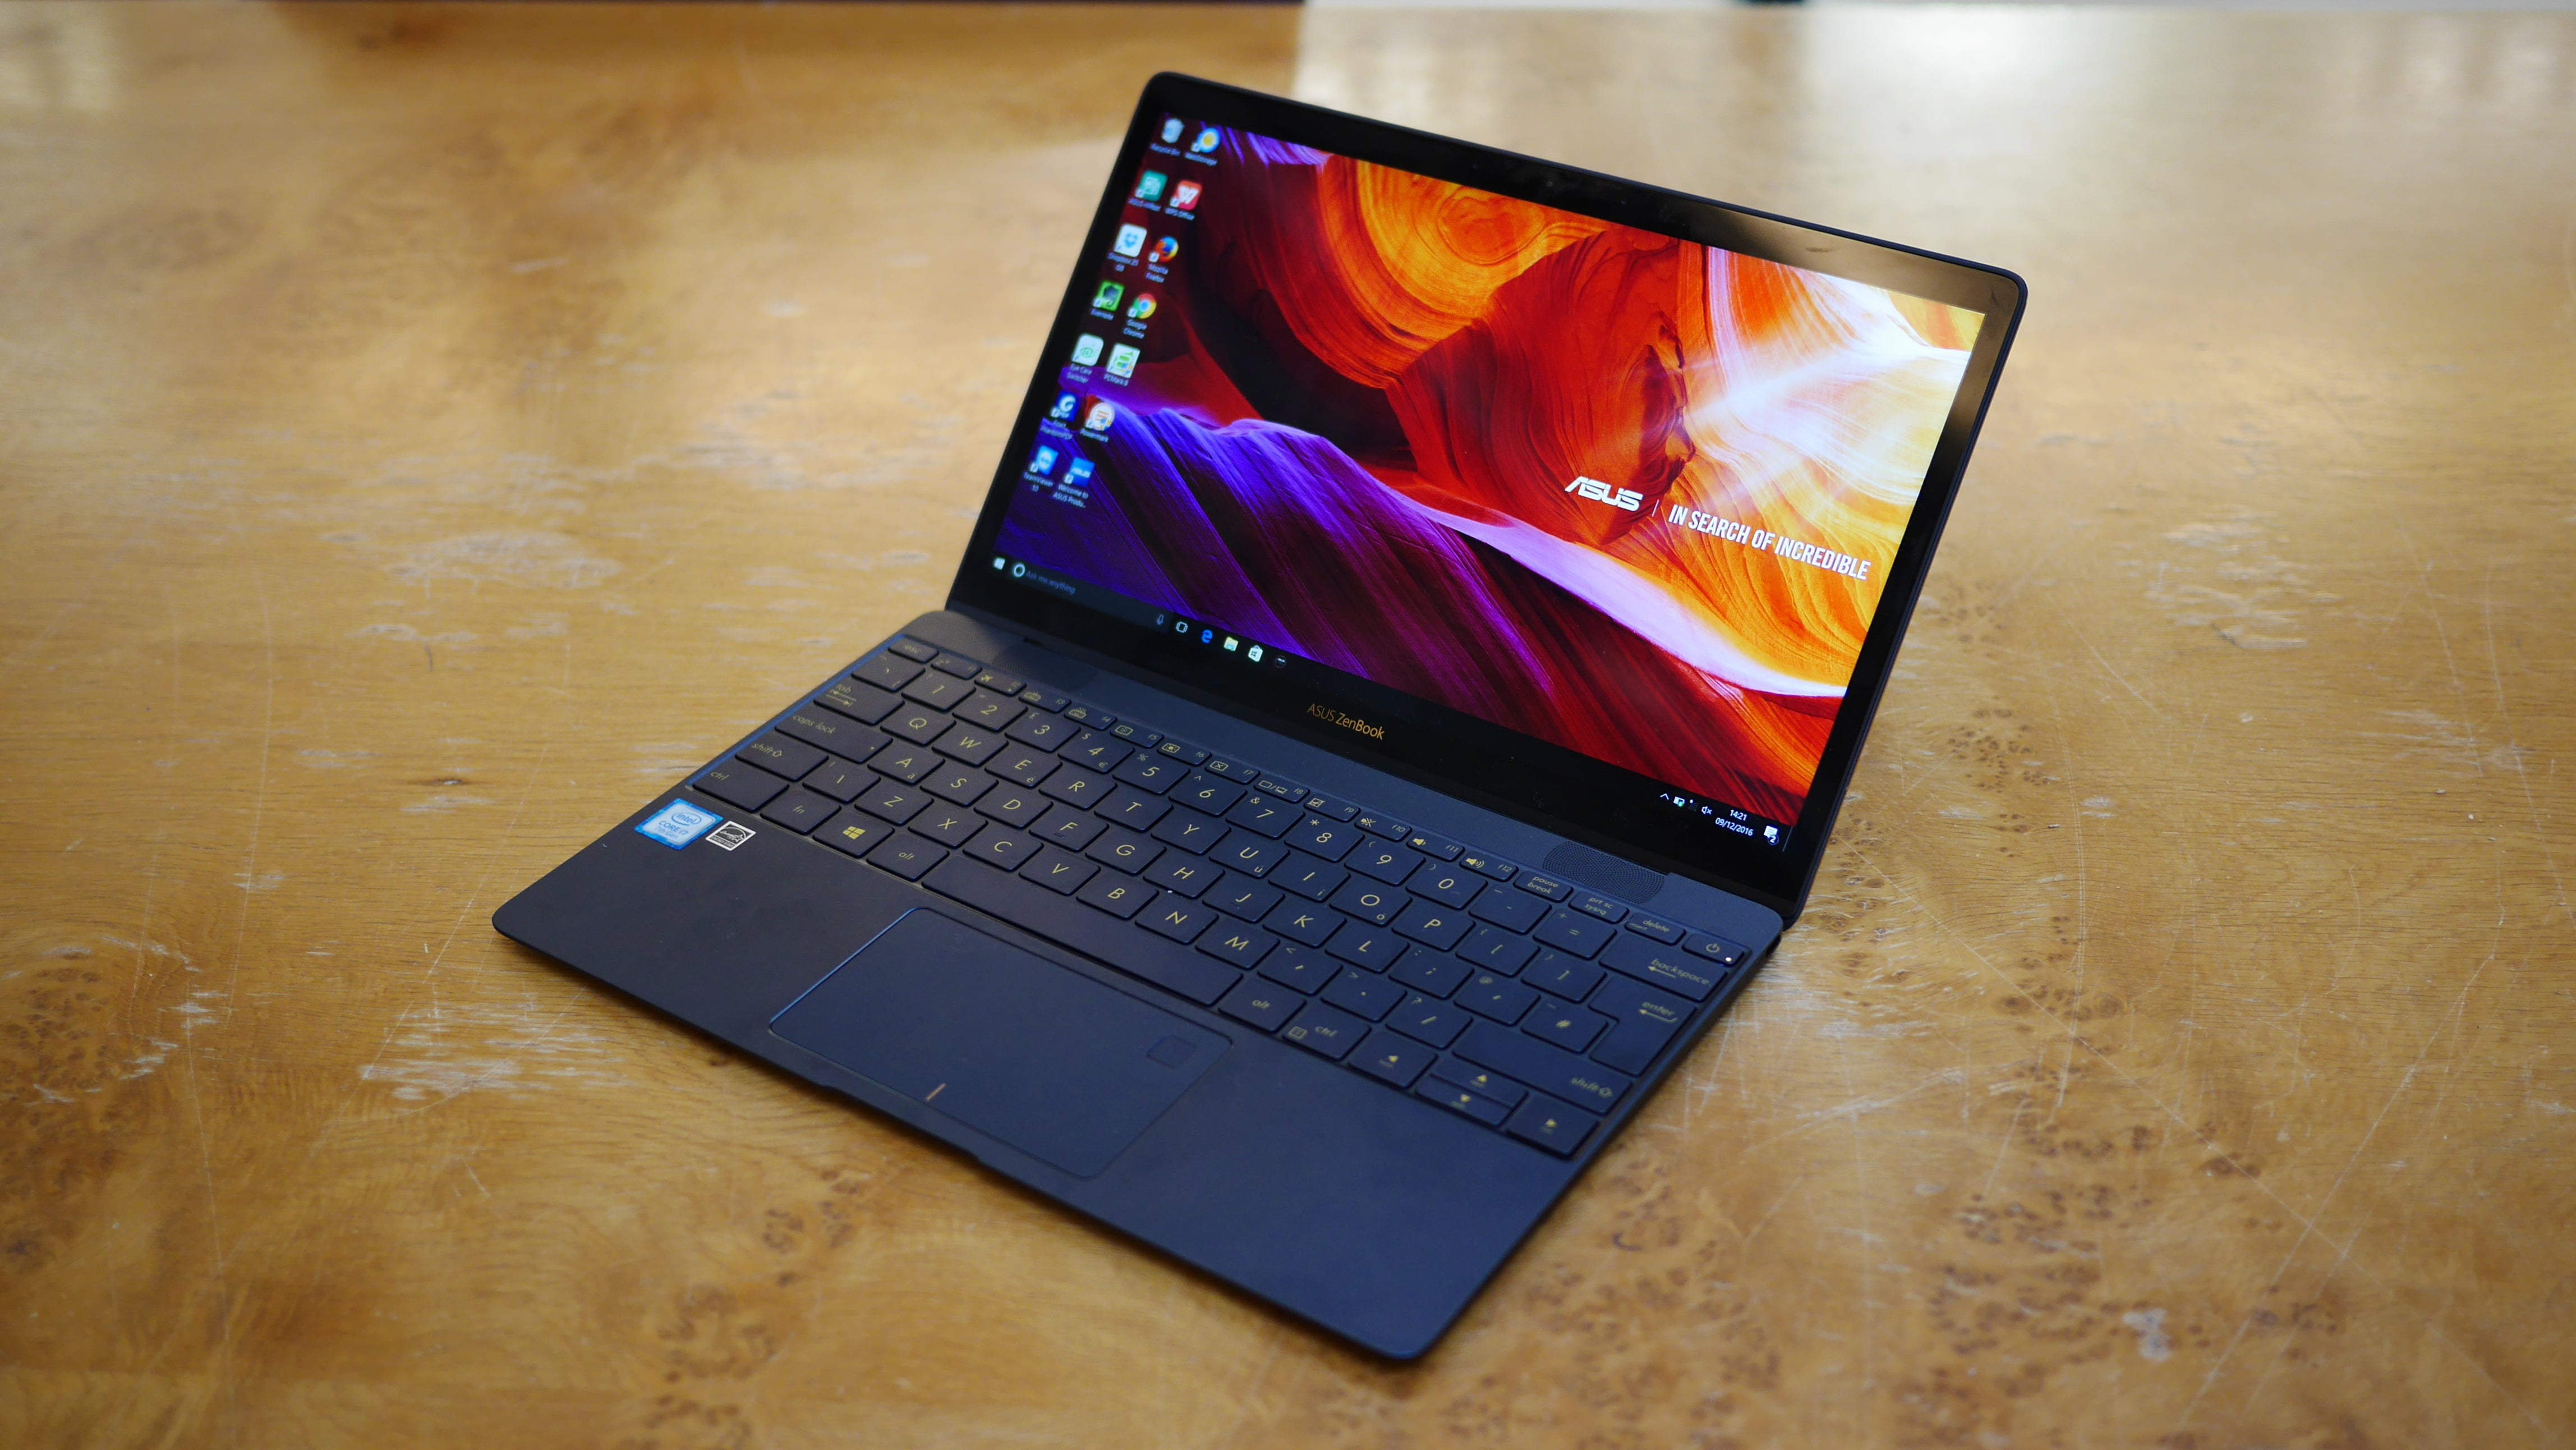 Asus Zenbook 3 Ux390ua Review Trusted Reviews